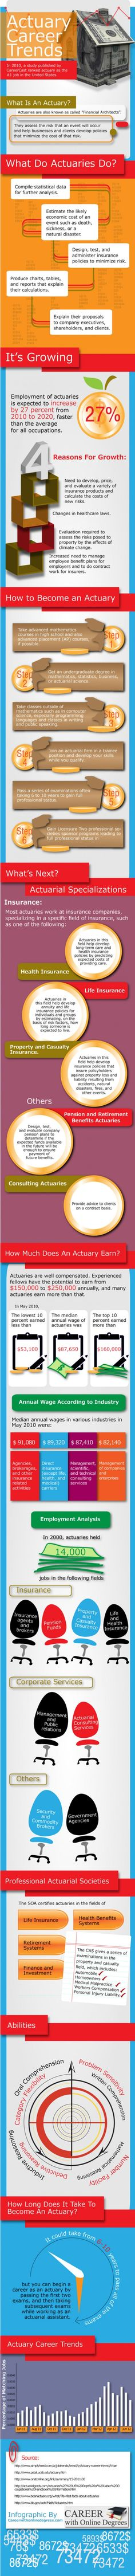 How to become an actuary: life outlined for me right here Career Choices, Career Change, Career Path, Public Security, Different Careers, Online Degree Programs, Education College, Higher Education, School Application